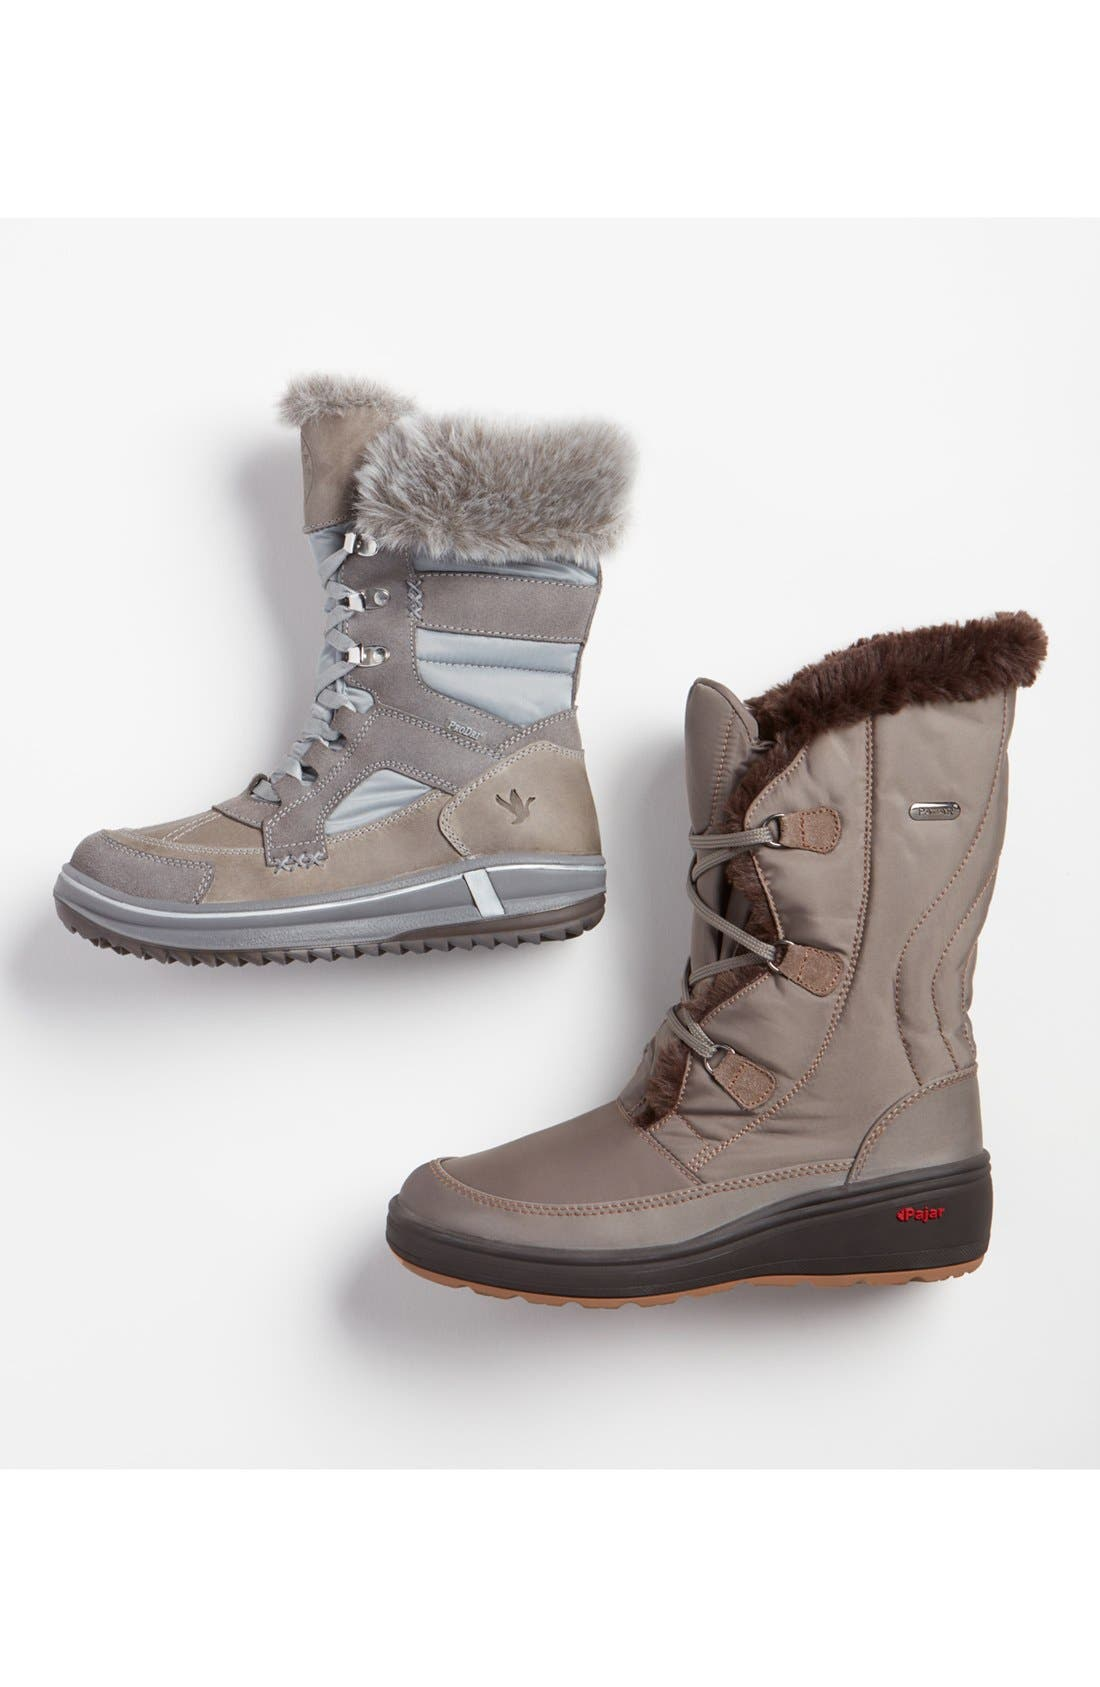 PAJAR 'Marcie' Waterproof Snow Boot with Faux Fur Collar, Main, color, 100